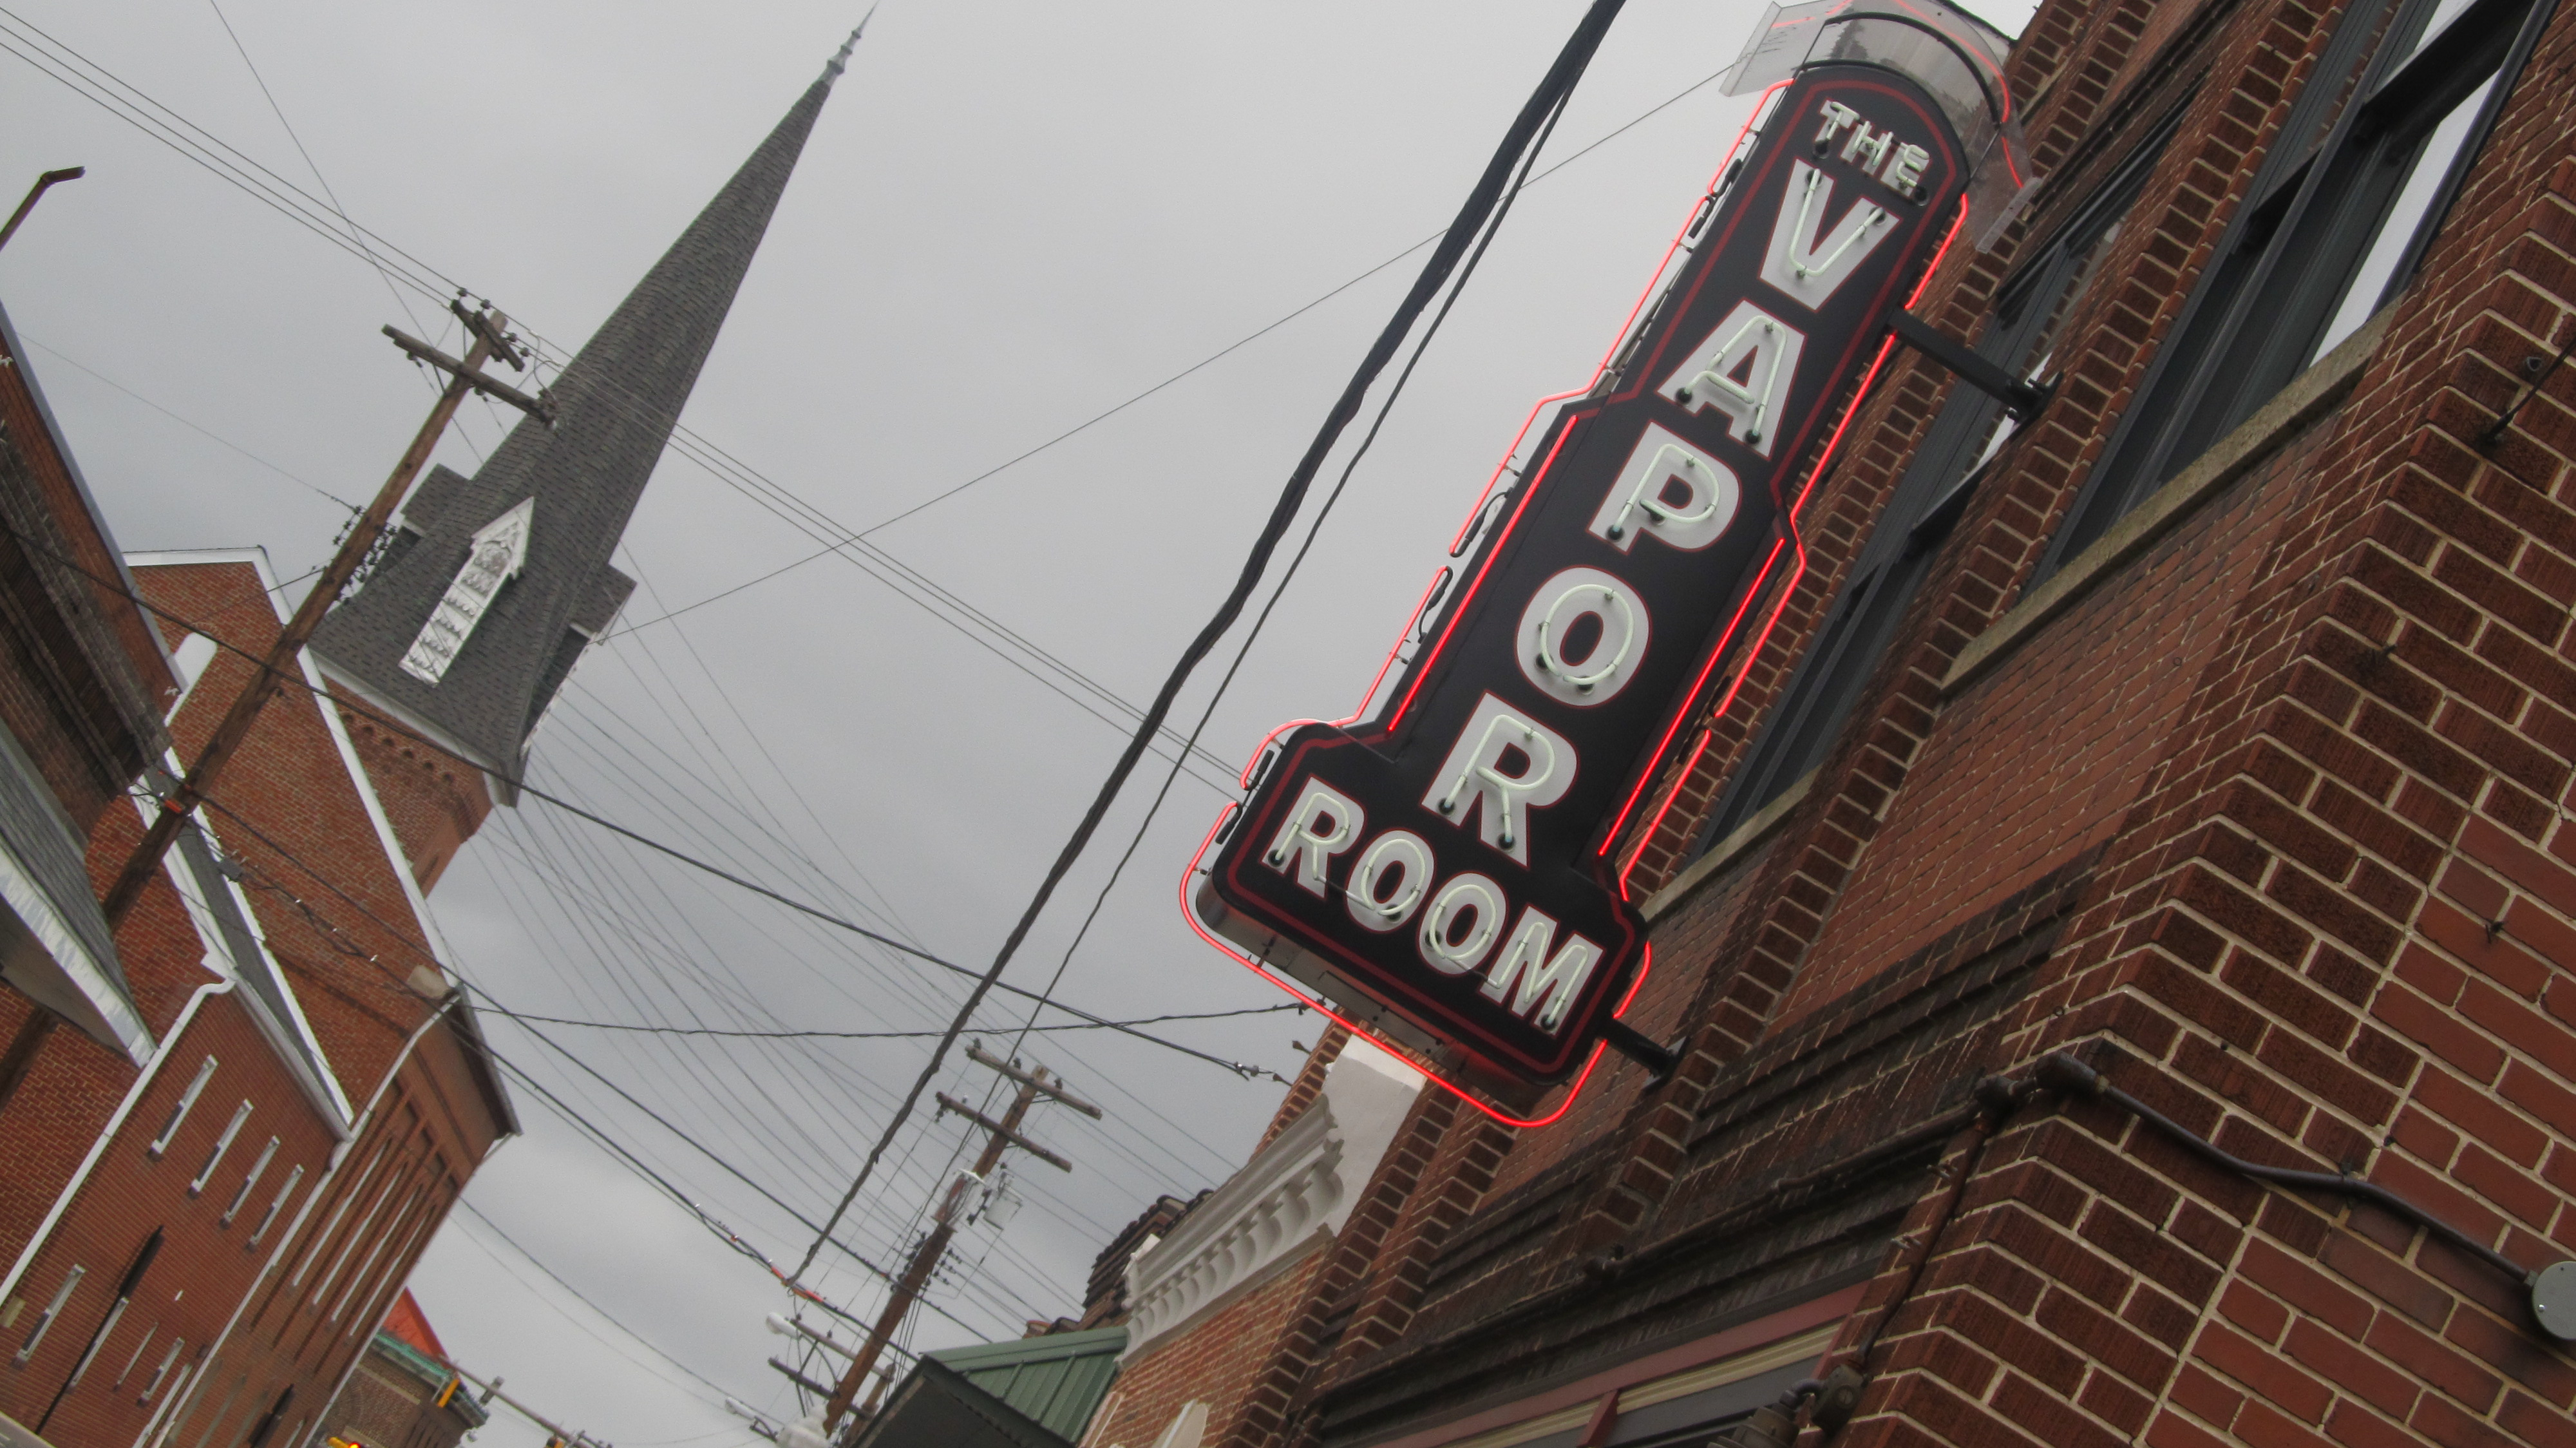 The Vapor Room is located on Water Street in Frostburg.